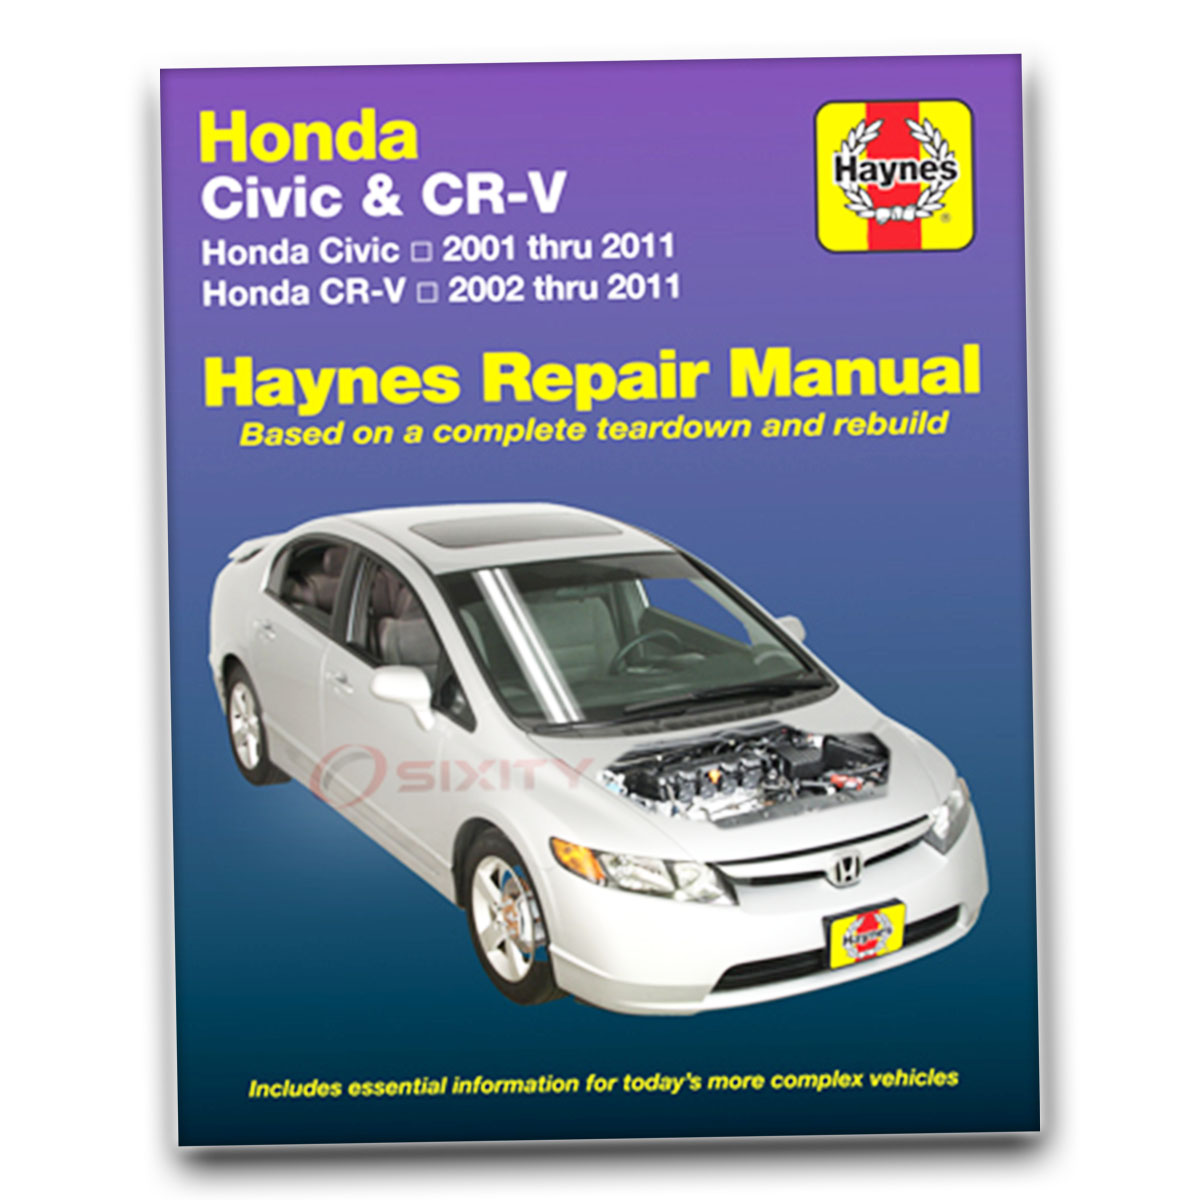 honda civic haynes repair manual gx ex lx mugen si dx value package rh ebay com 2010 honda civic service manual pdf free 2010 honda civic service manual pdf